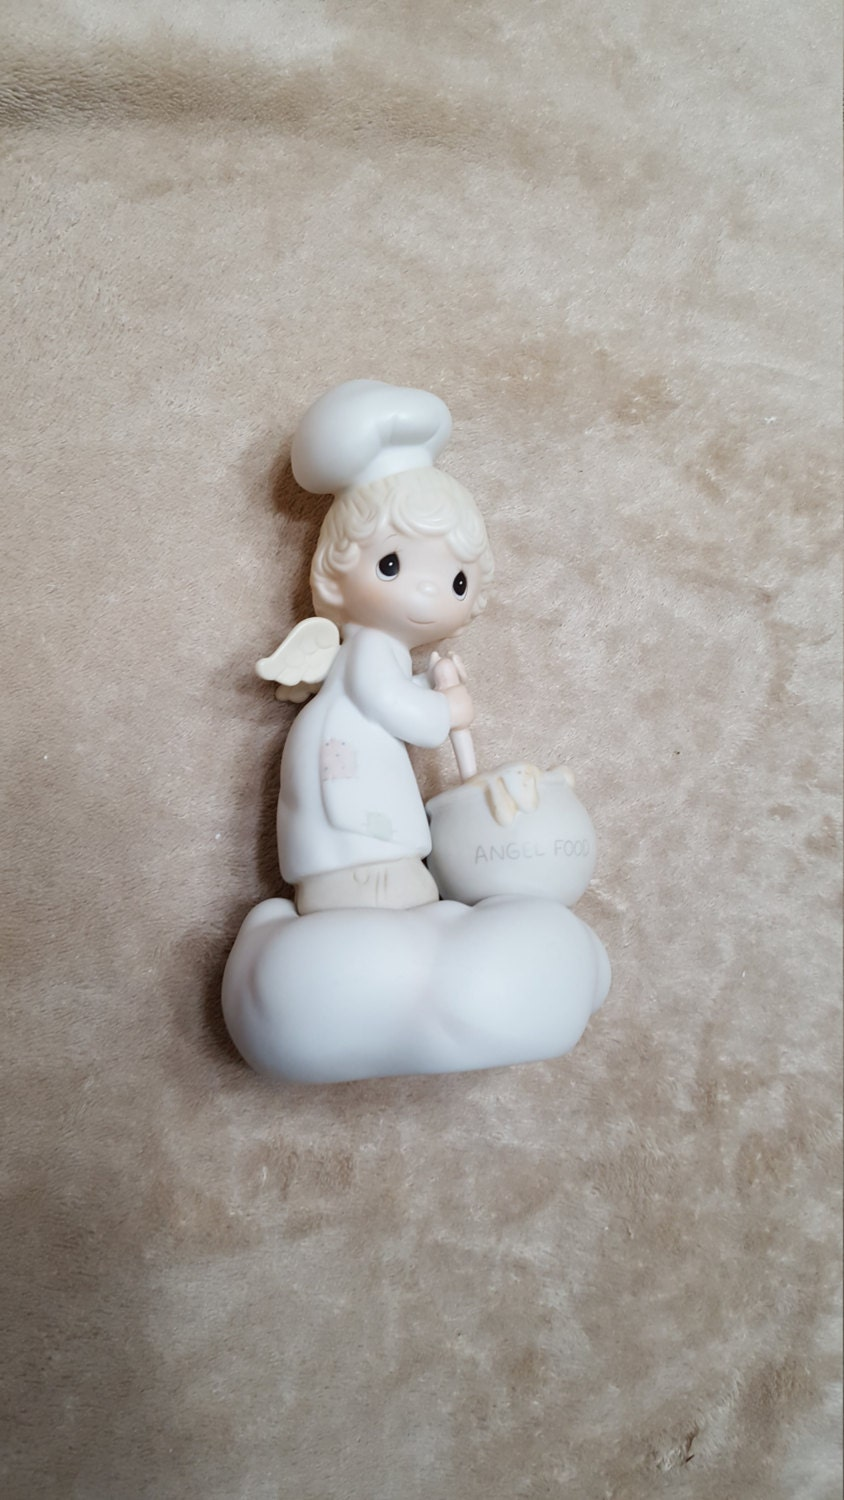 Vintage Enesco Precious Moments #E9274 \u2018Taste And See That The Lord Is Good\u2019 1982 Figurine Collectible